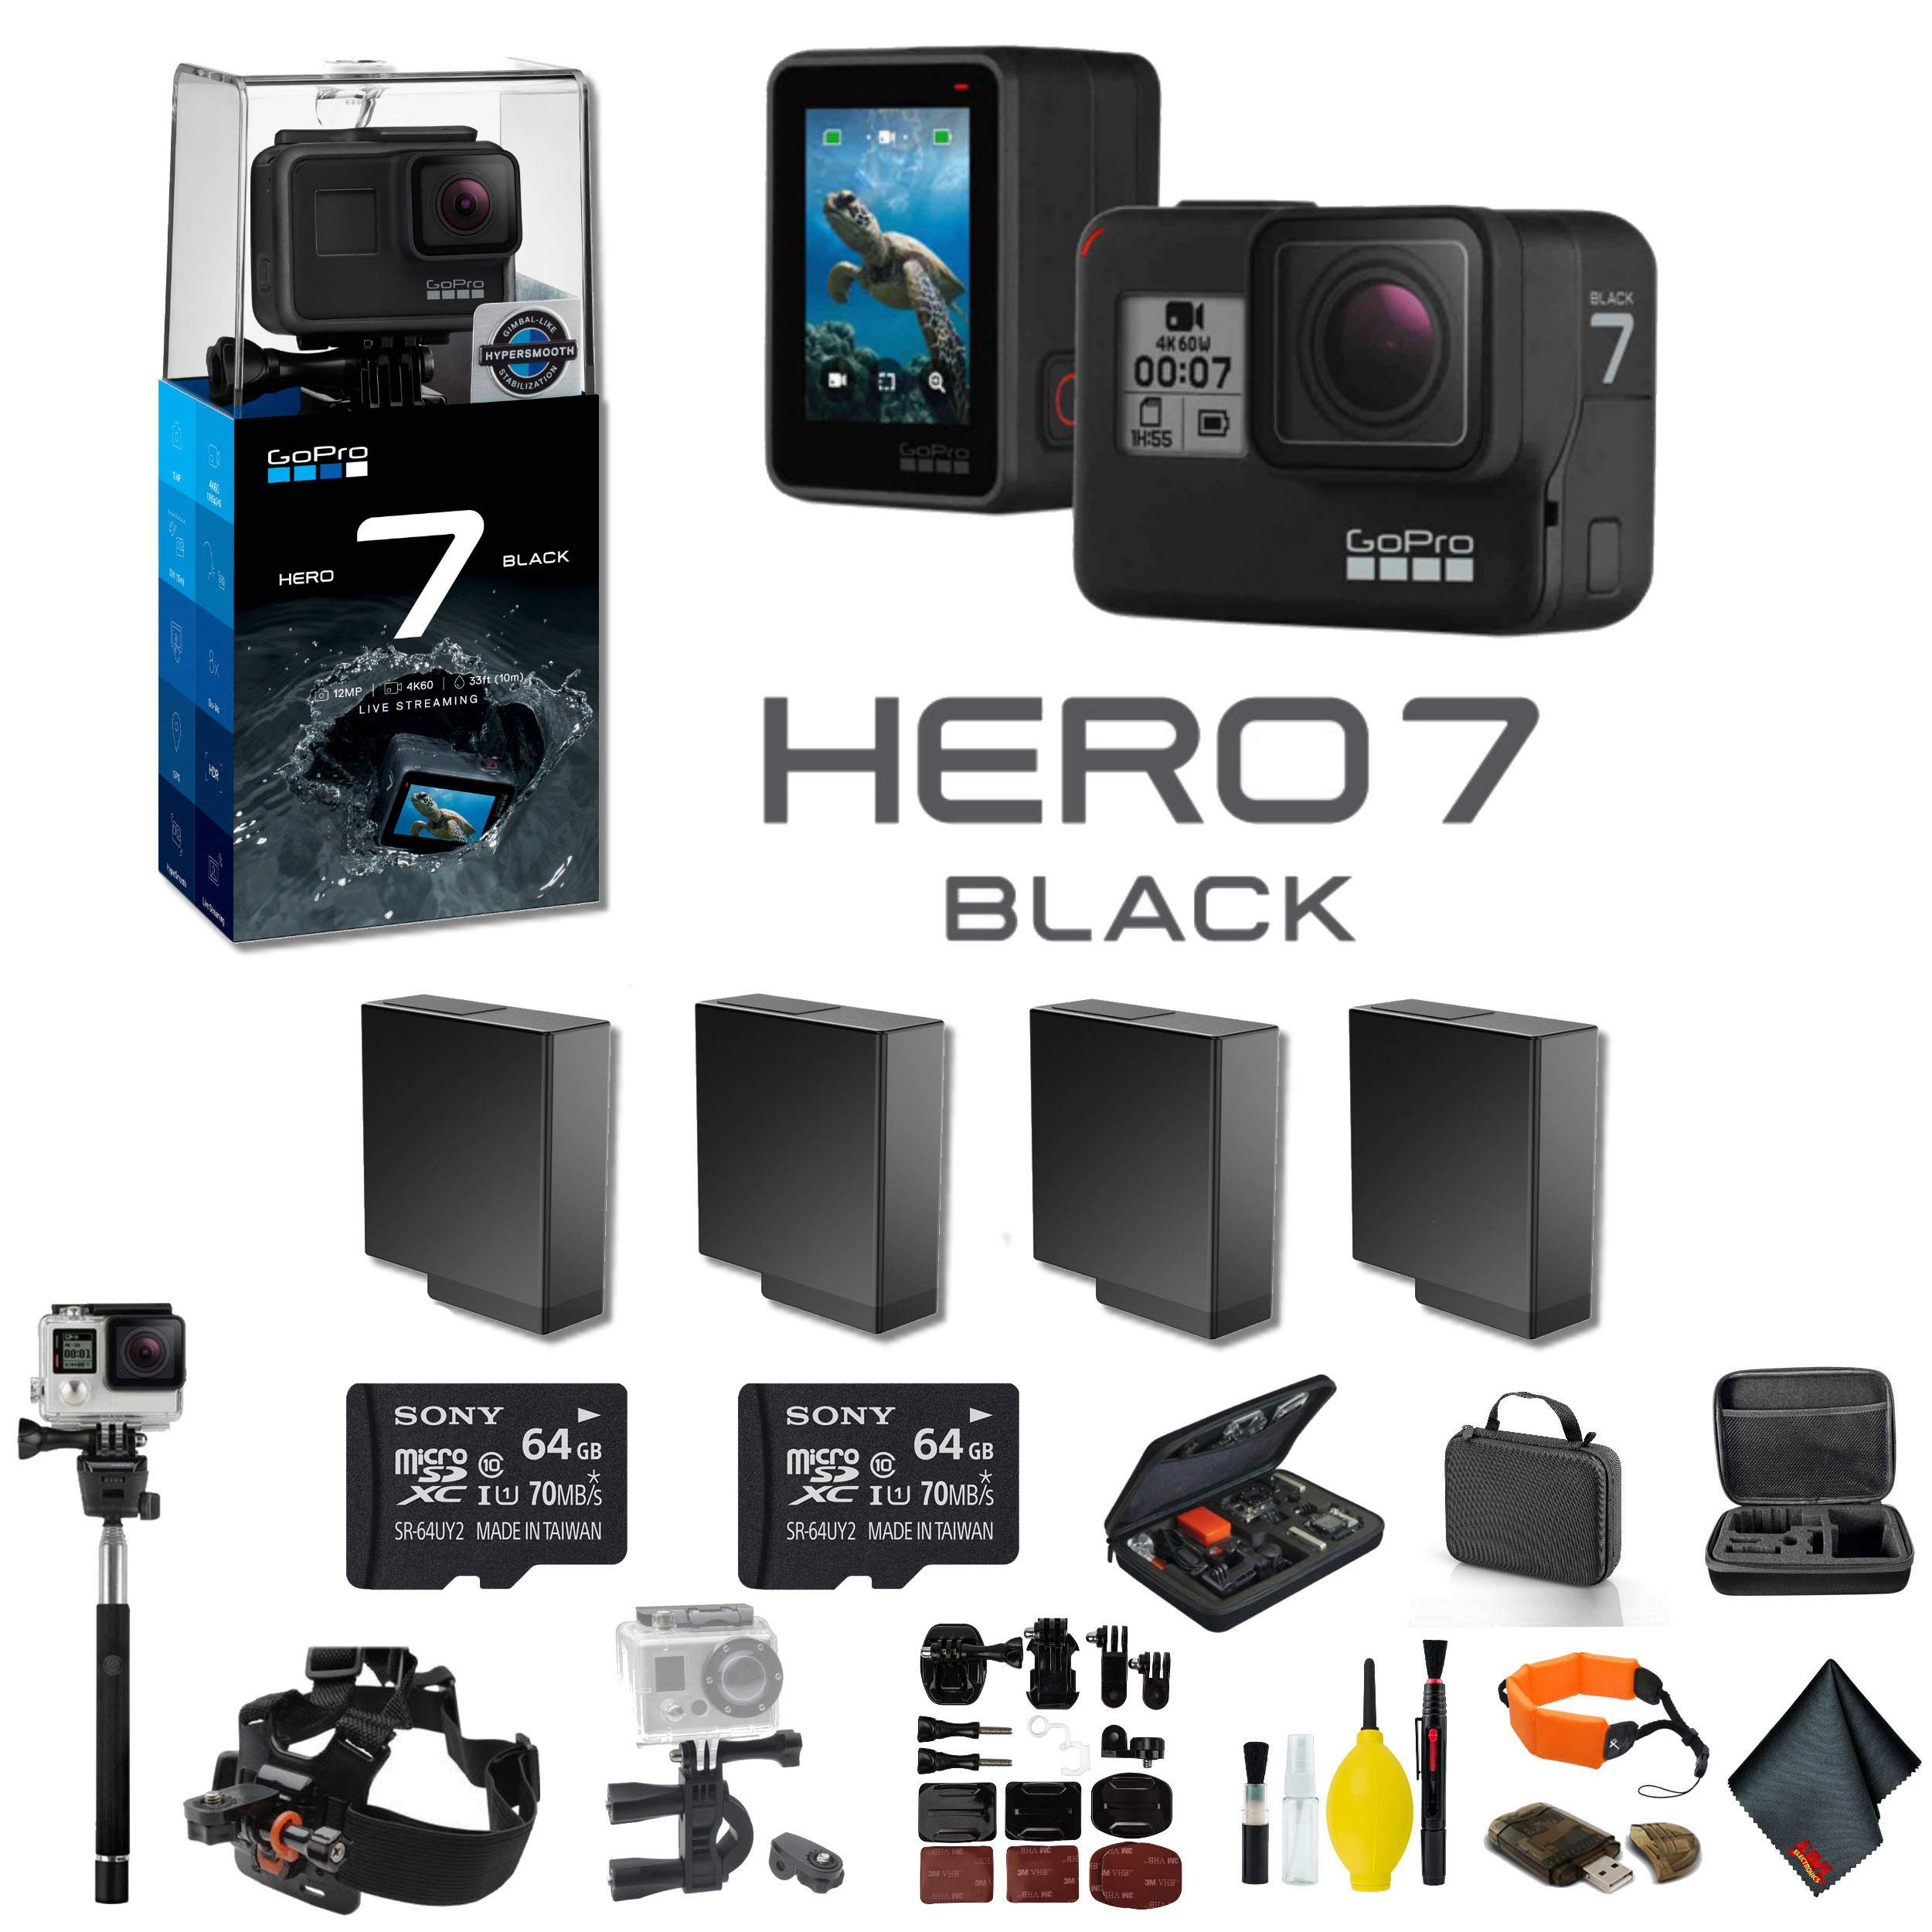 GoPro HERO7 Black Action Camera 3 Extra Battery, External Charger, 2 64GB Memory Card, Case, Chest Mount, Handle Bar Mount, Selfie Stick, Floating Strap More.- 4 Battery Bundle